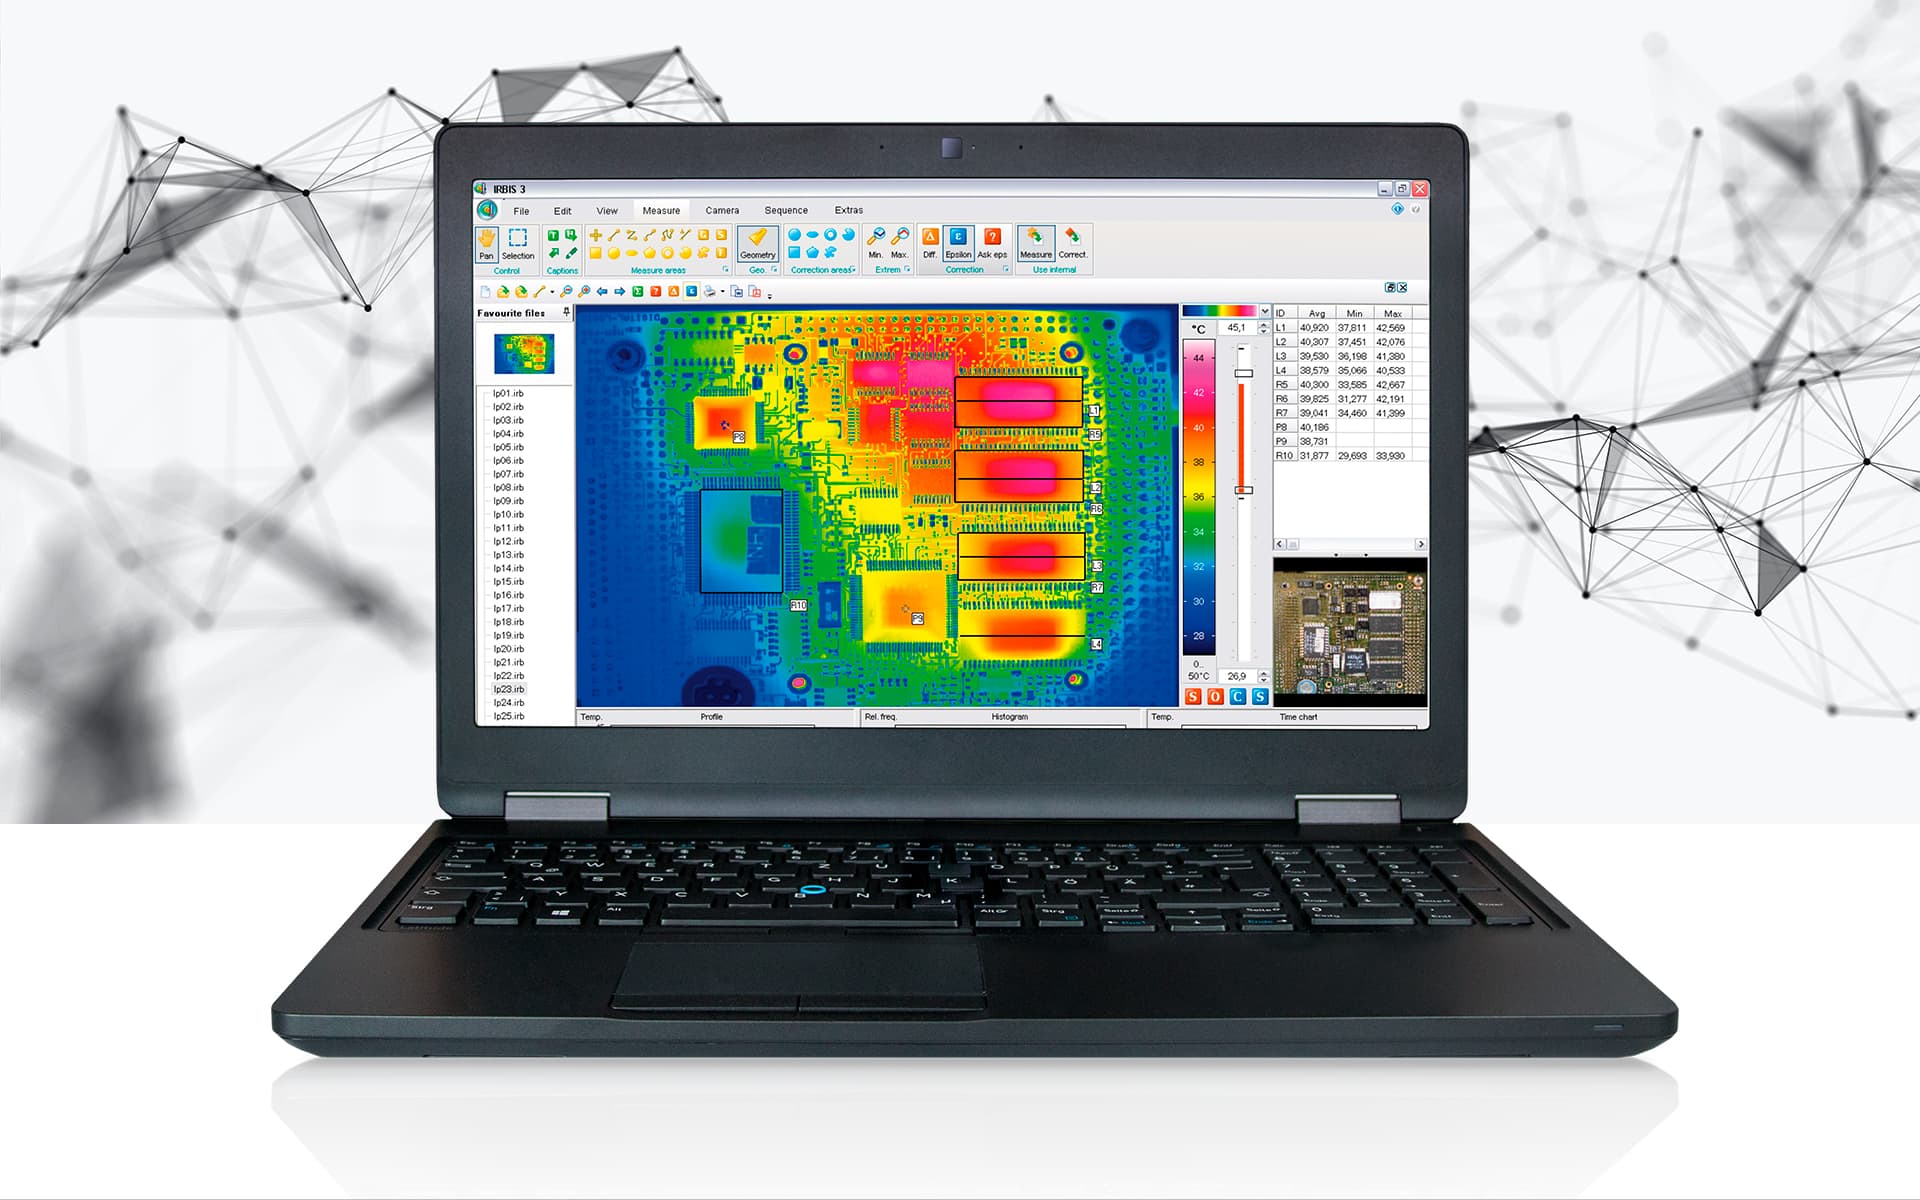 Thermography software IRBIS 3 from InfraTec - Picture Credits: © iStock.com / from2015